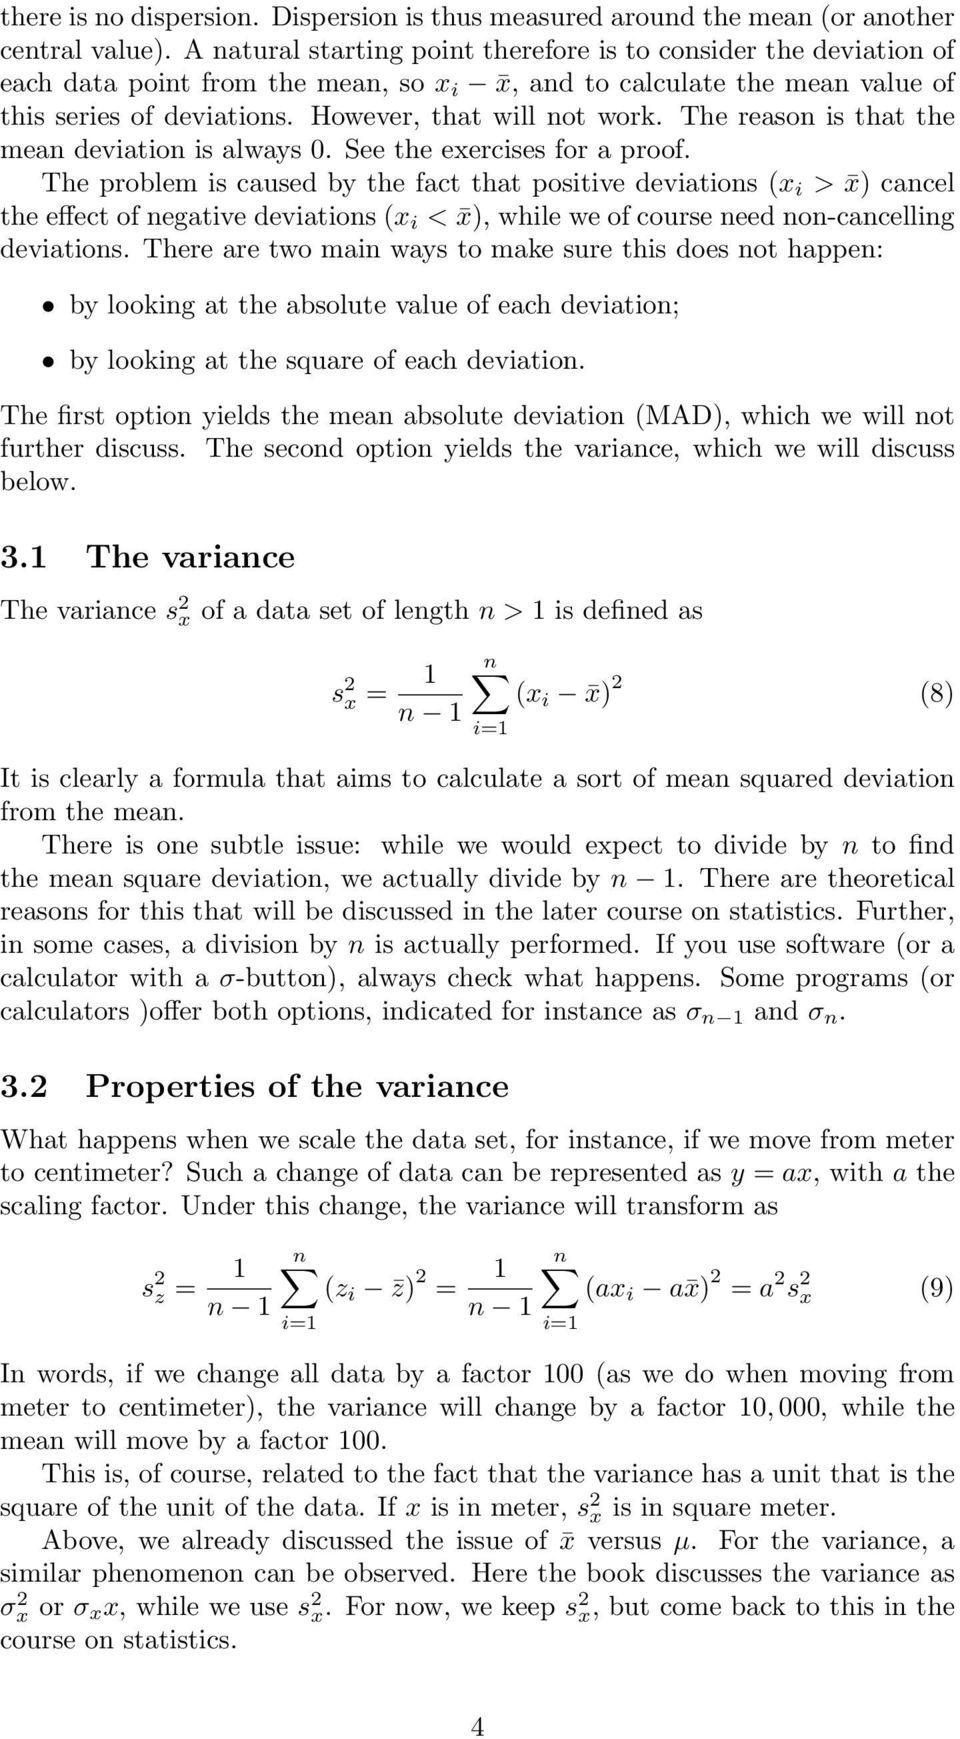 The reason is that the mean deviation is always 0. See the exercises for a proof.